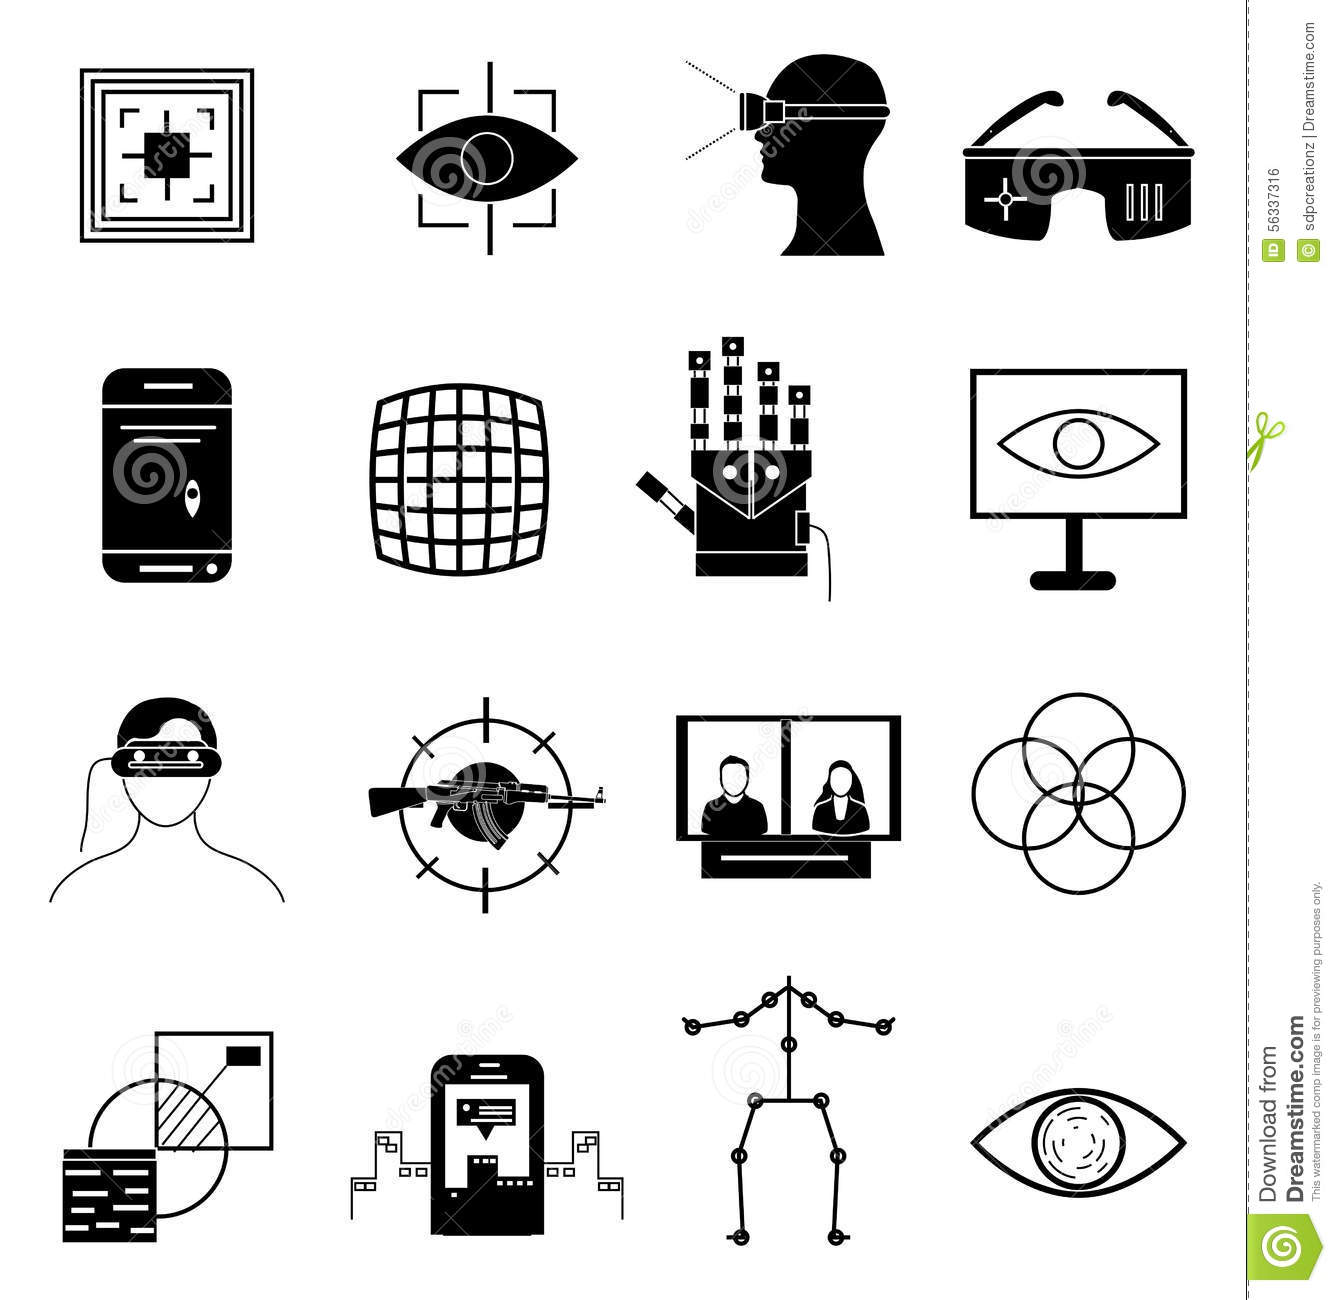 Virtual reality icons set stock vector. Illustration of